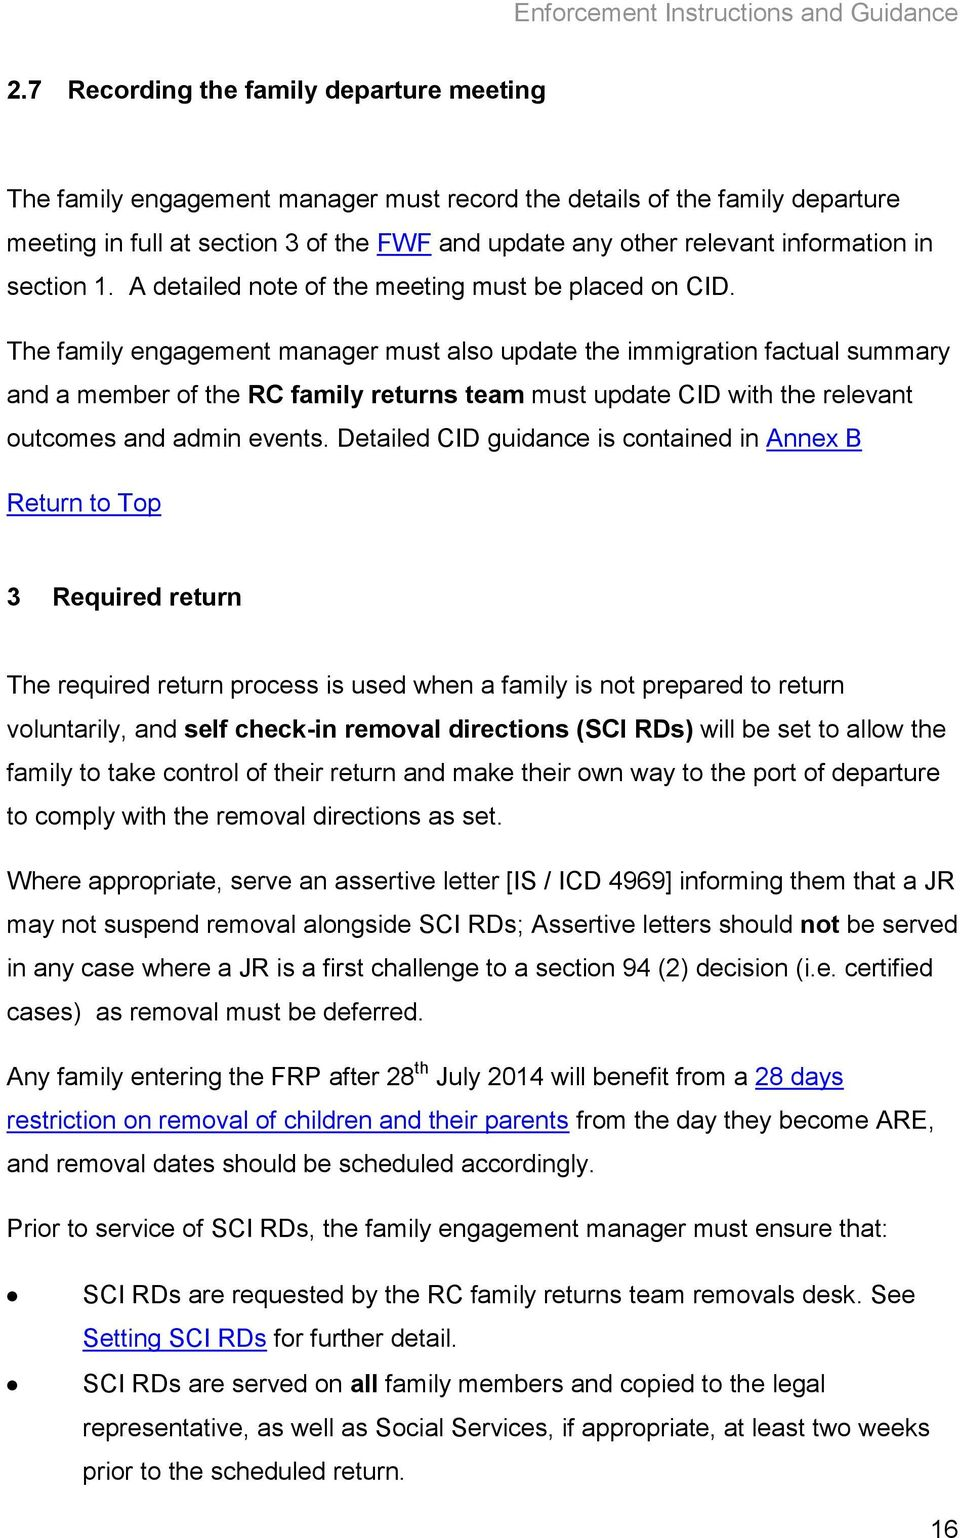 The family engagement manager must also update the immigration factual summary and a member of the RC family returns team must update CID with the relevant outcomes and admin events.